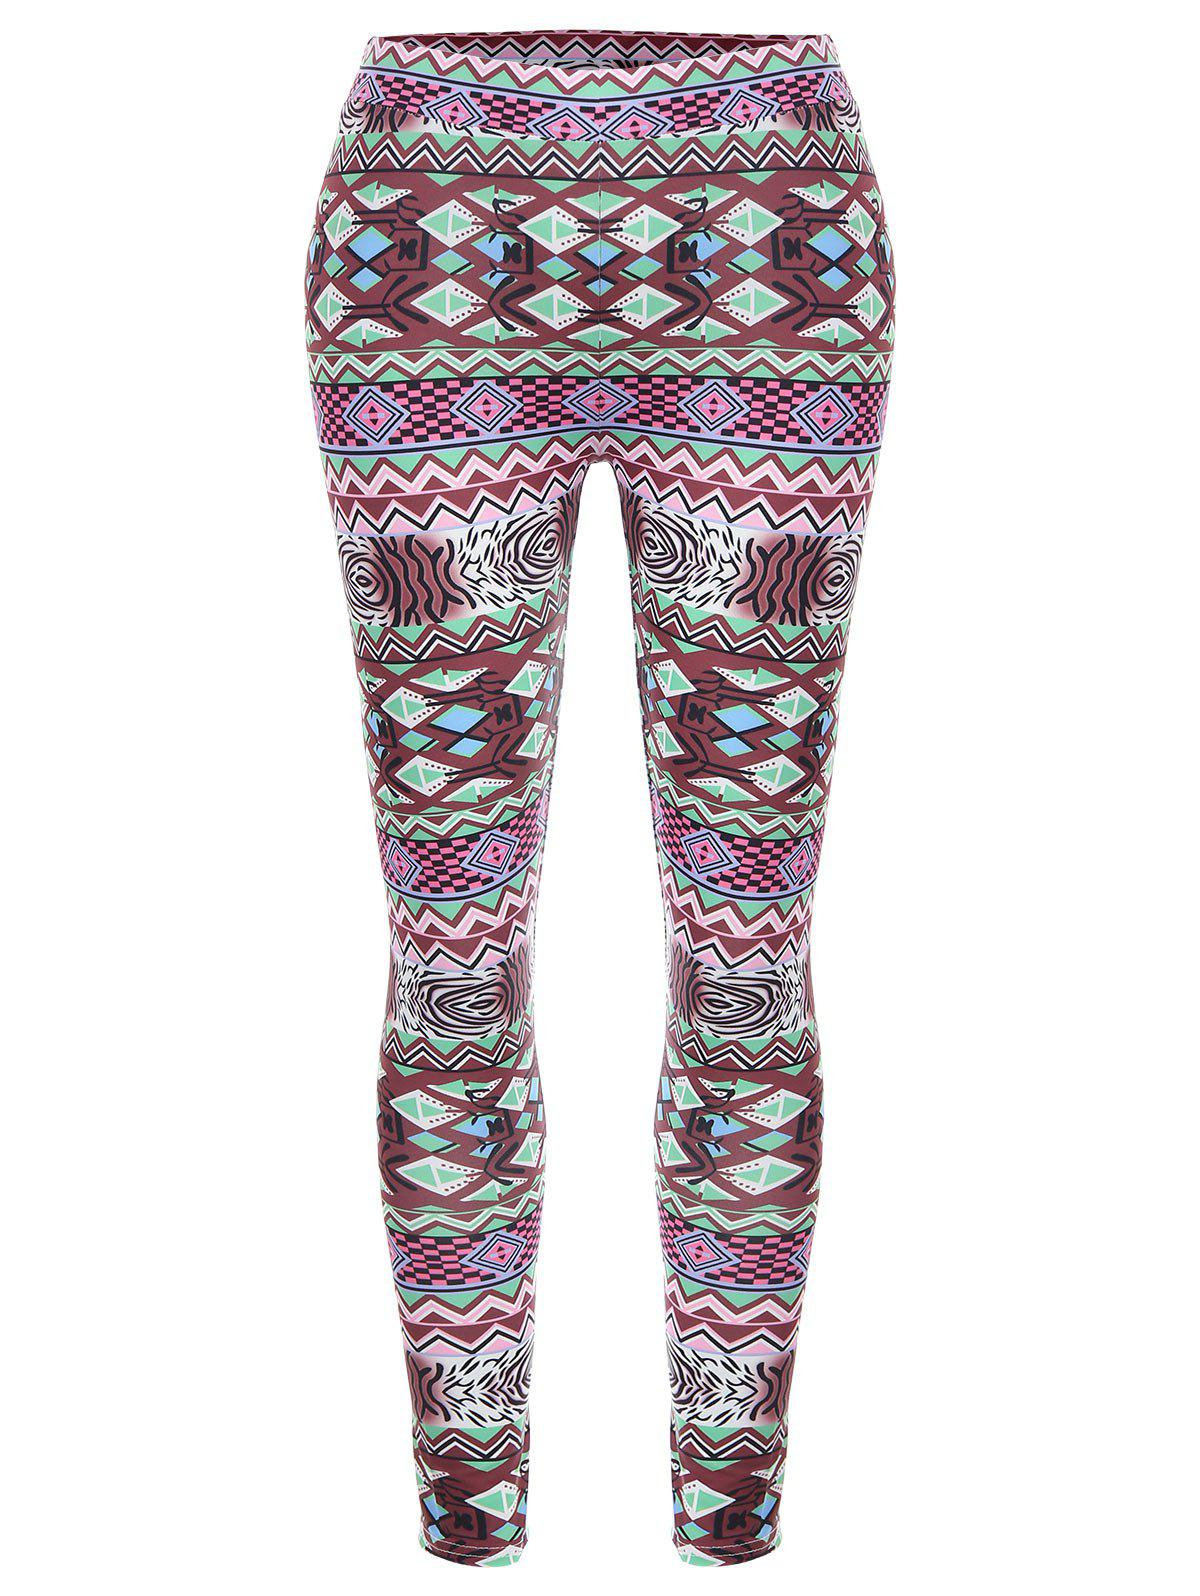 Affordable Geometric High Waisted Christmas Leggings